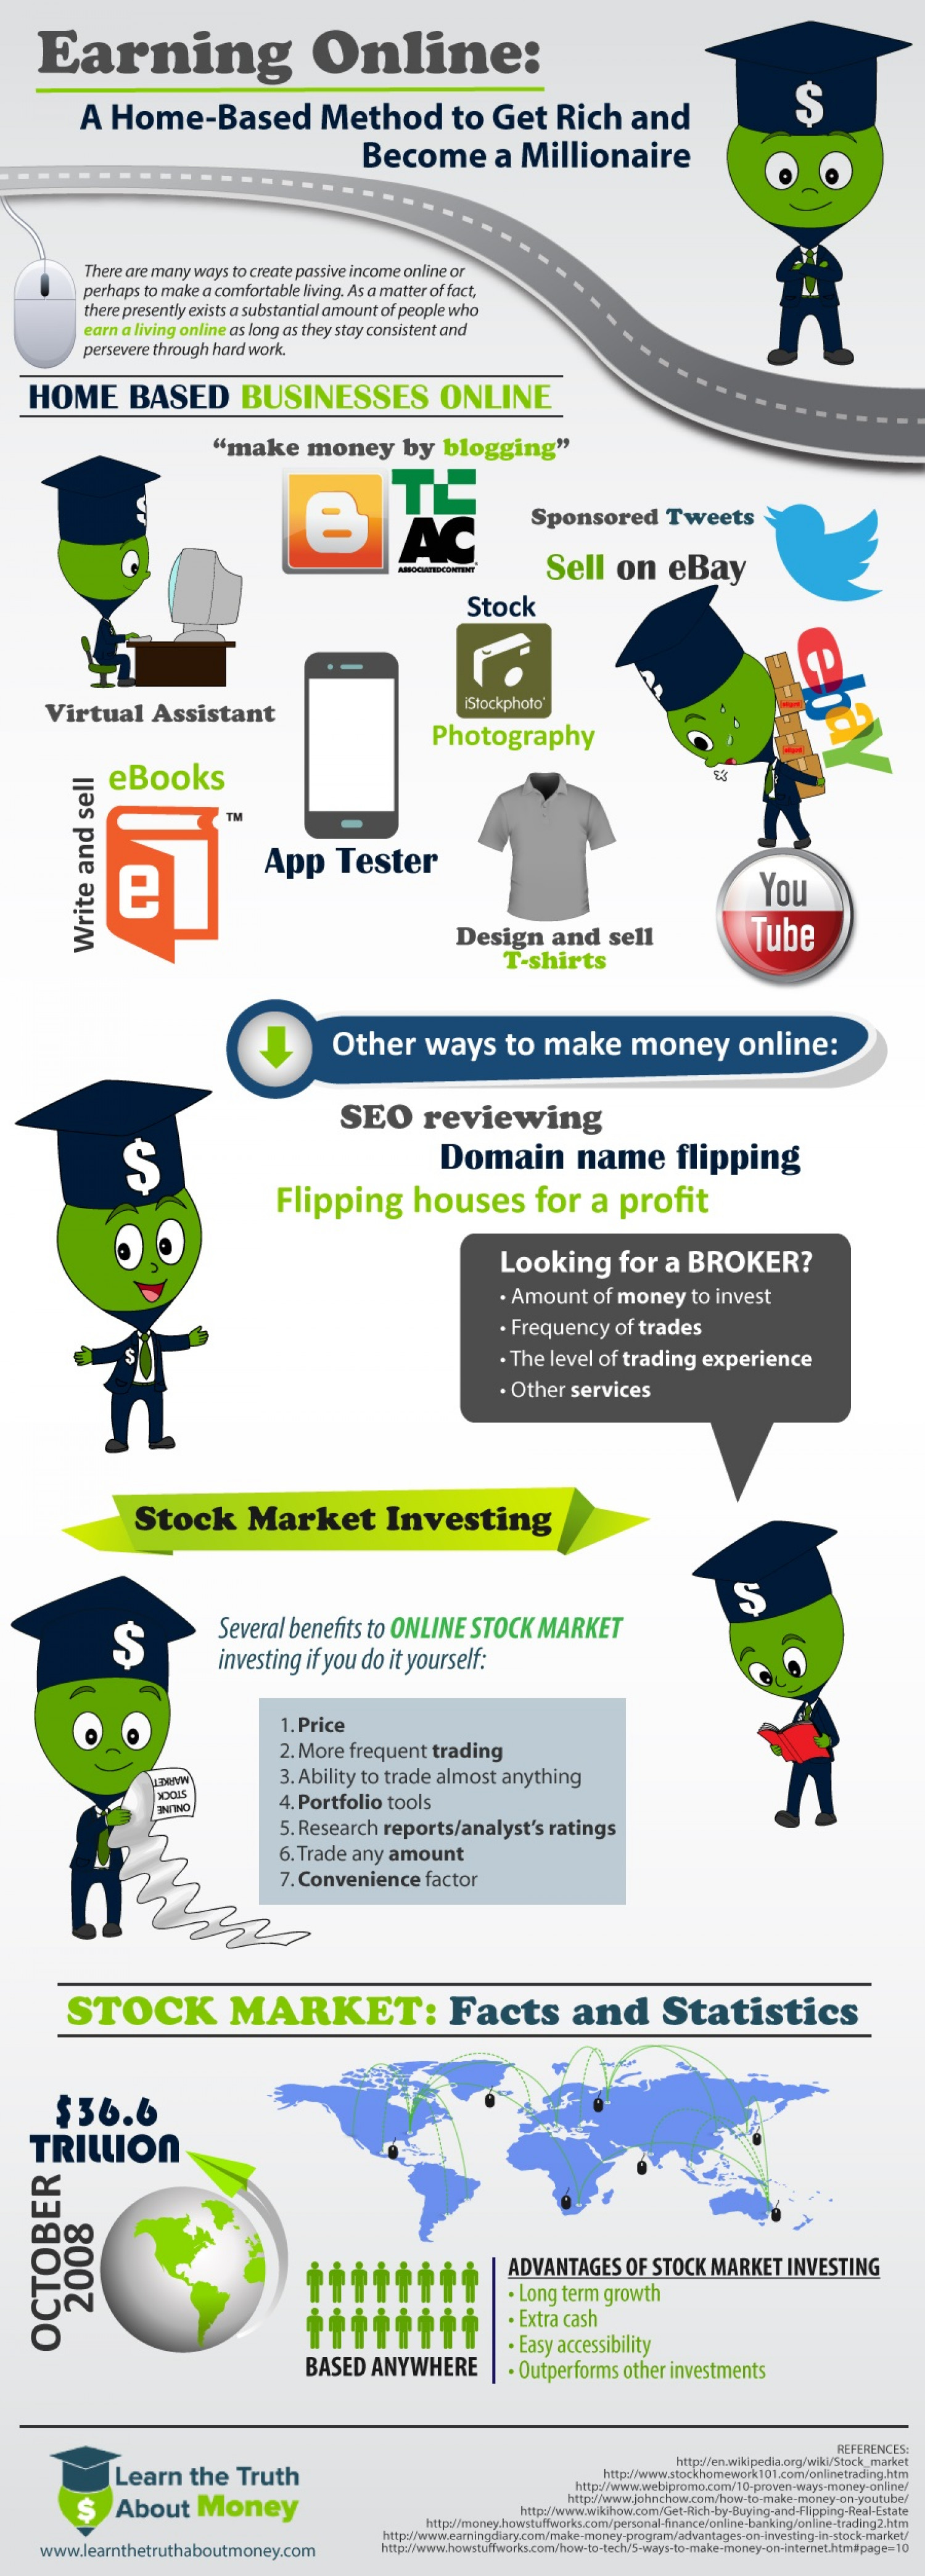 Earning Online: A Home-Based Method to Get Rich and Become a Millionaire Infographic